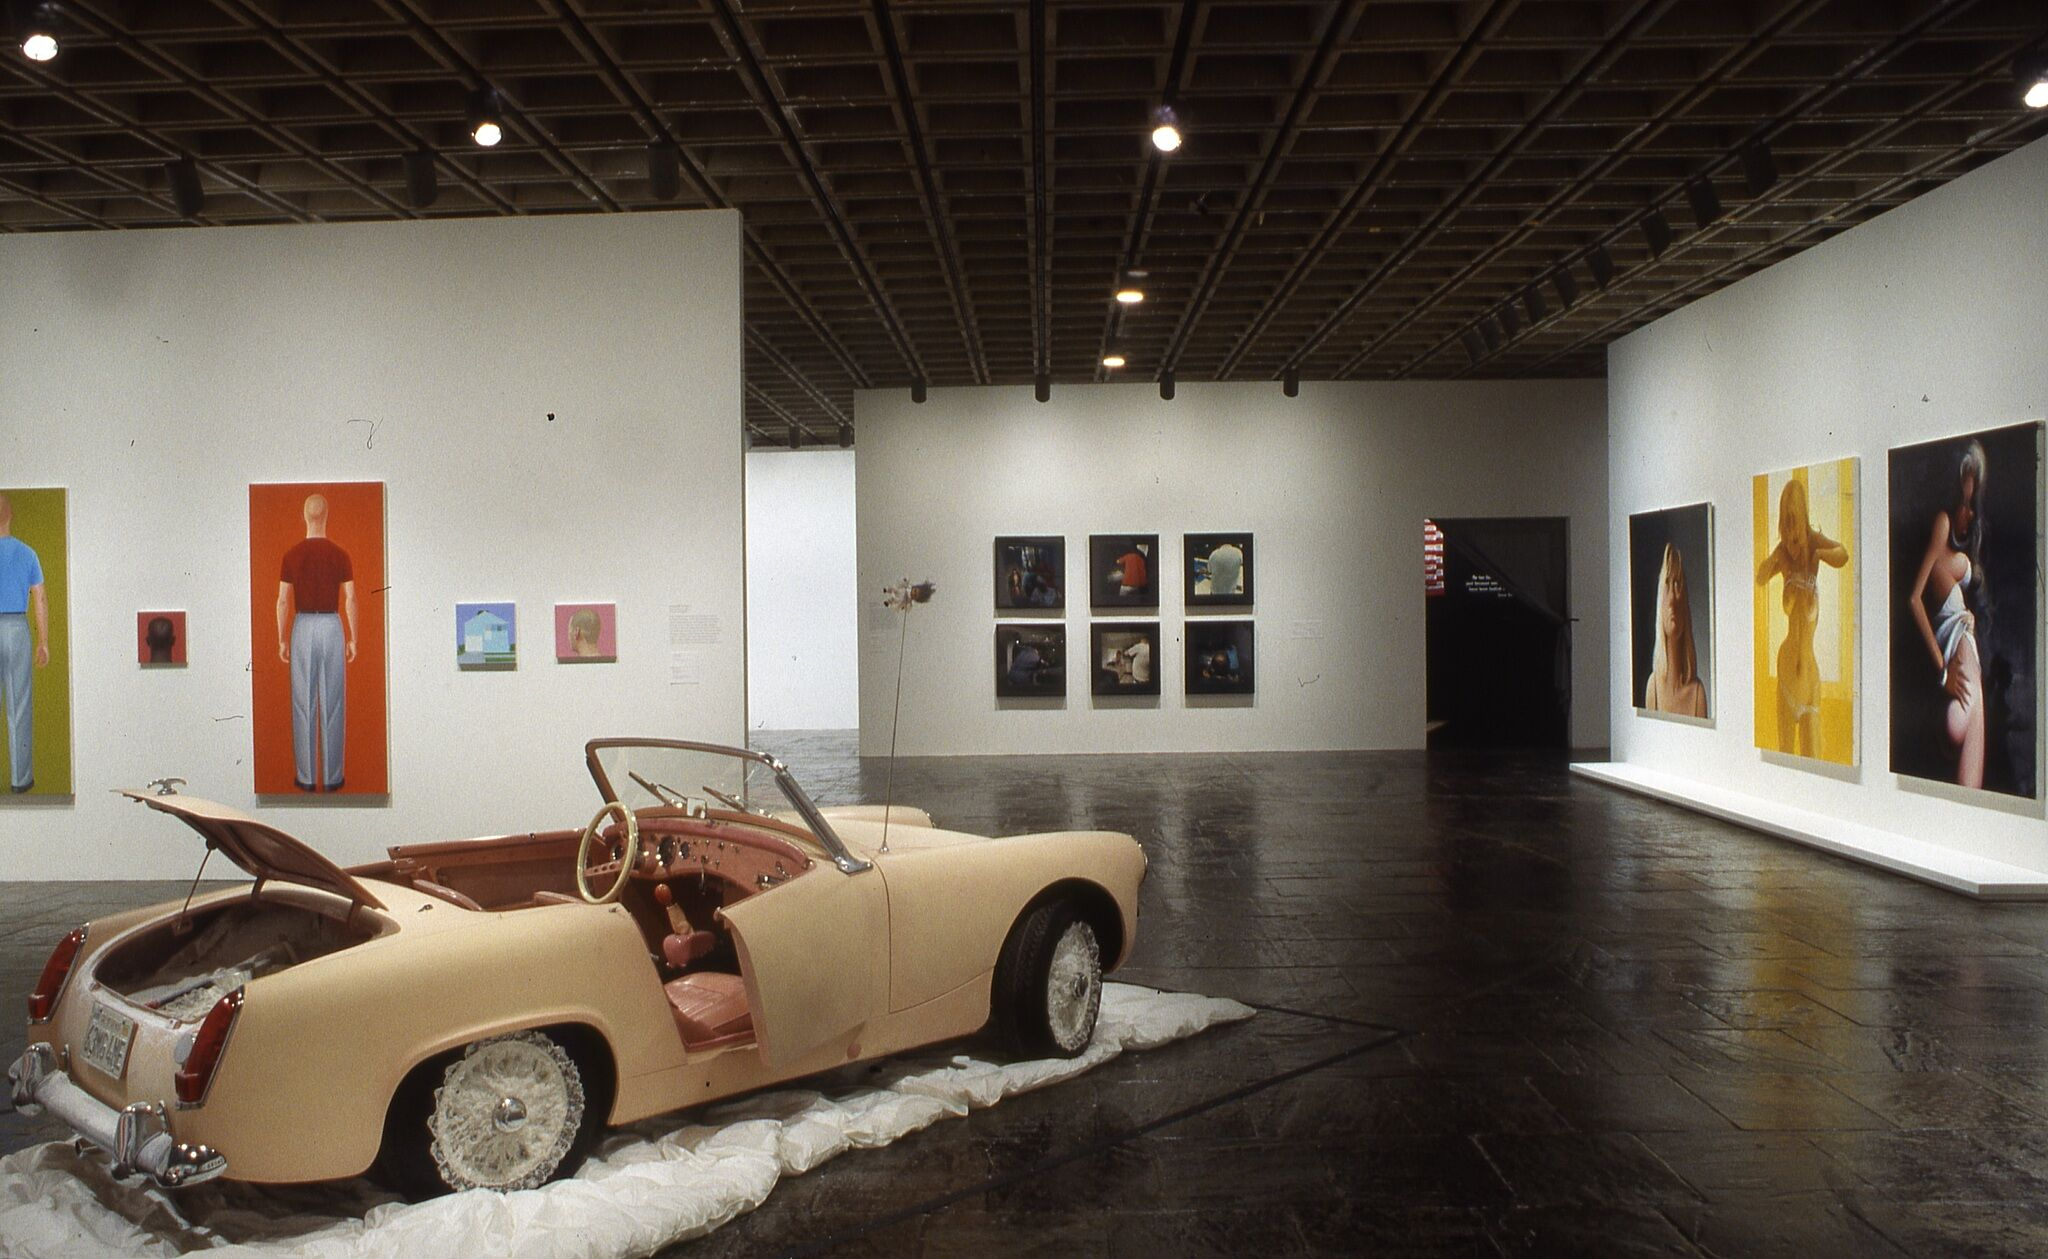 A gallery filled with works of art on the walls and a sculpture of a car.